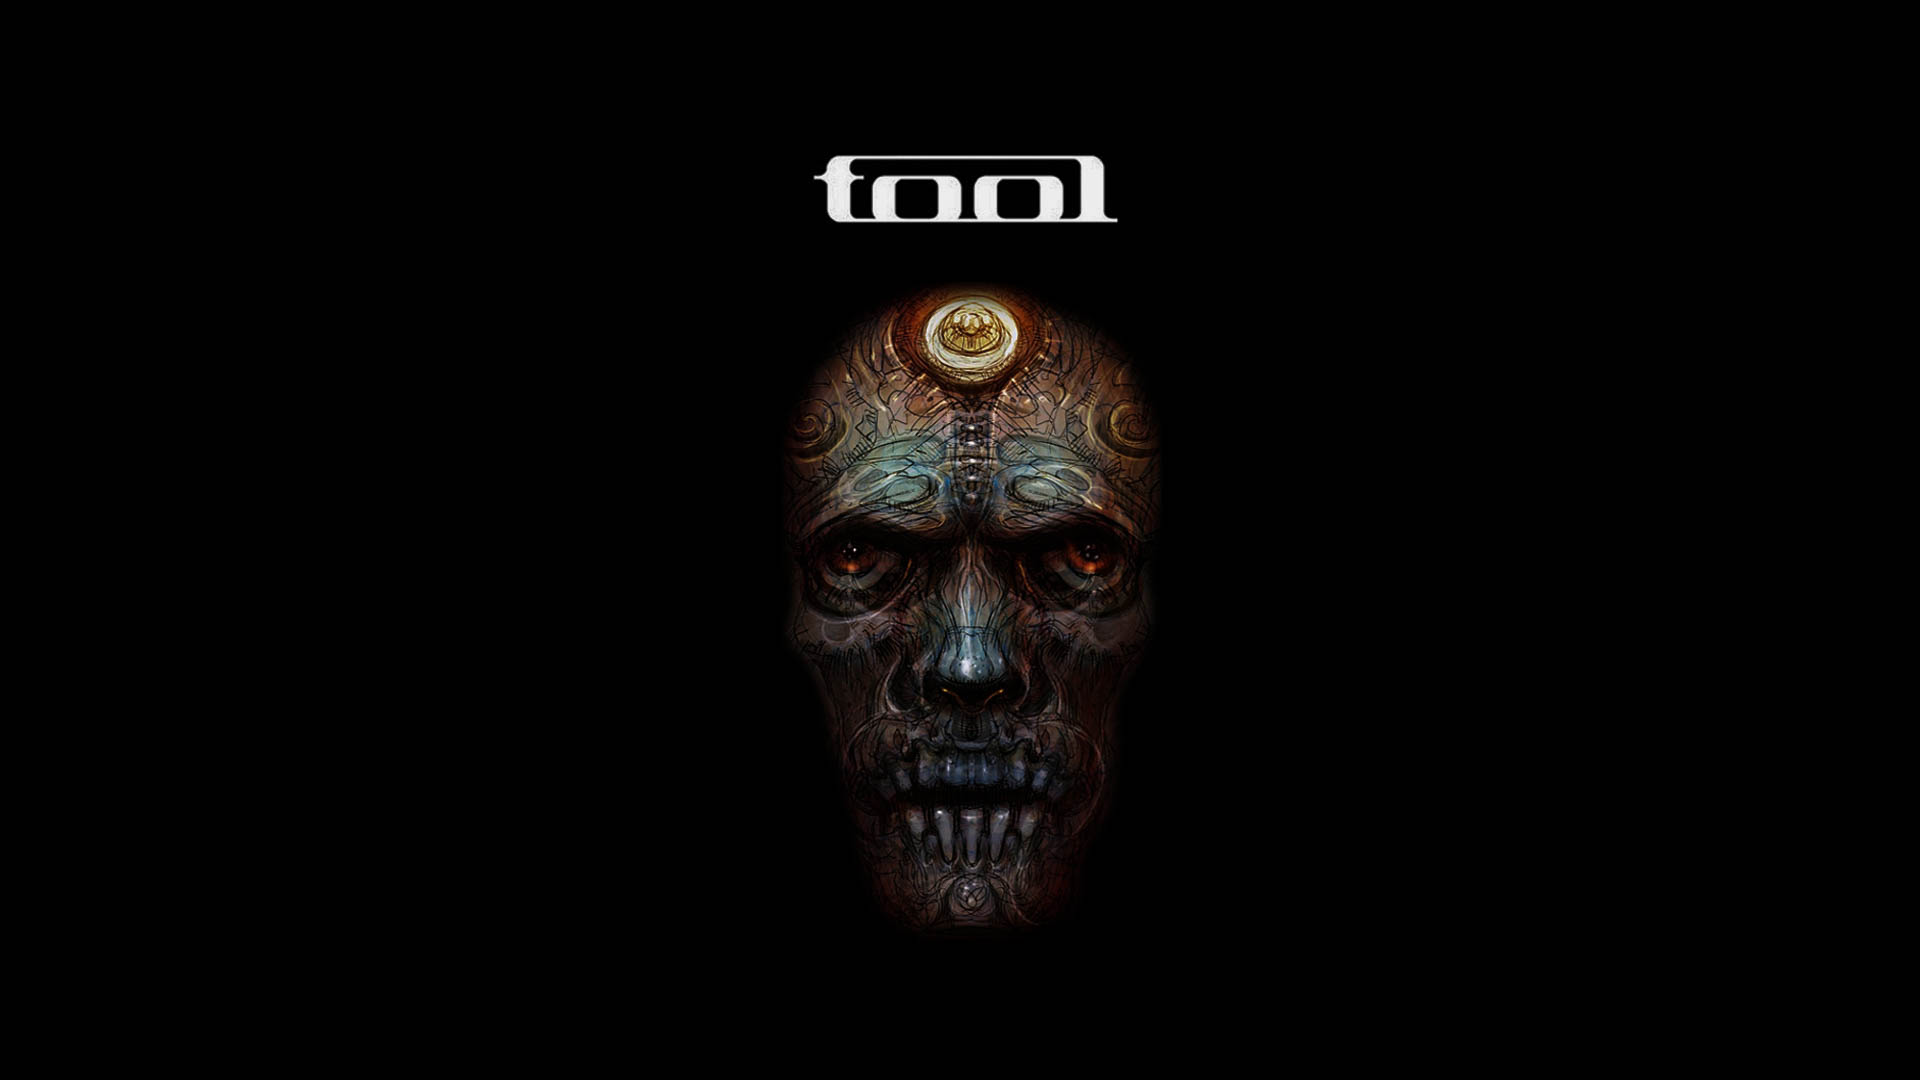 Tool Face Tatooed